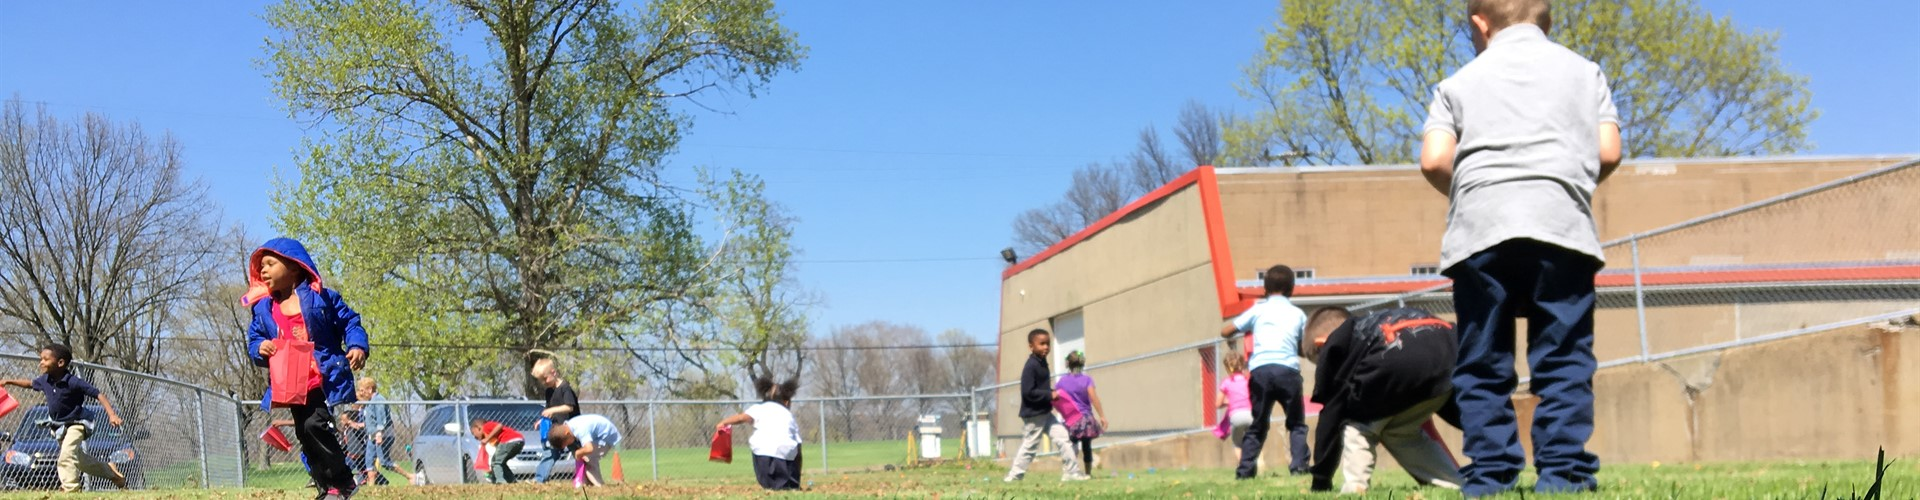 Wilkins Primary kindergarteners participate in an Easter Egg hunt